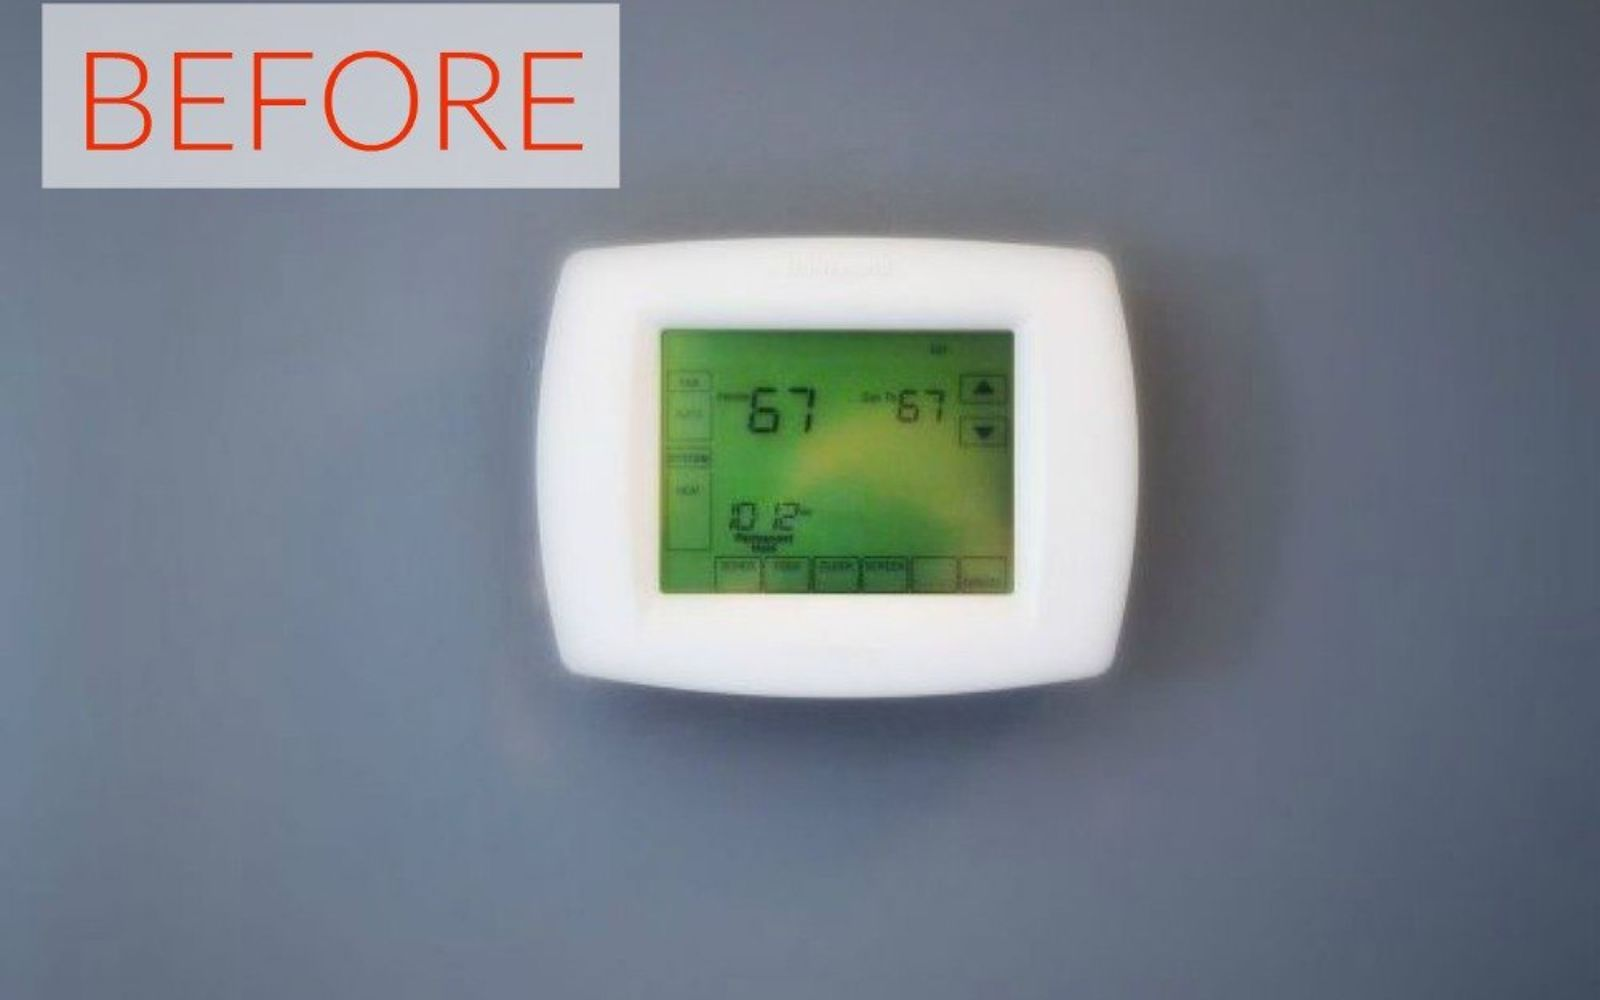 s hide your home s eyesores with these 11 brilliant ideas, home decor, The eyesore Your average wall thermostat